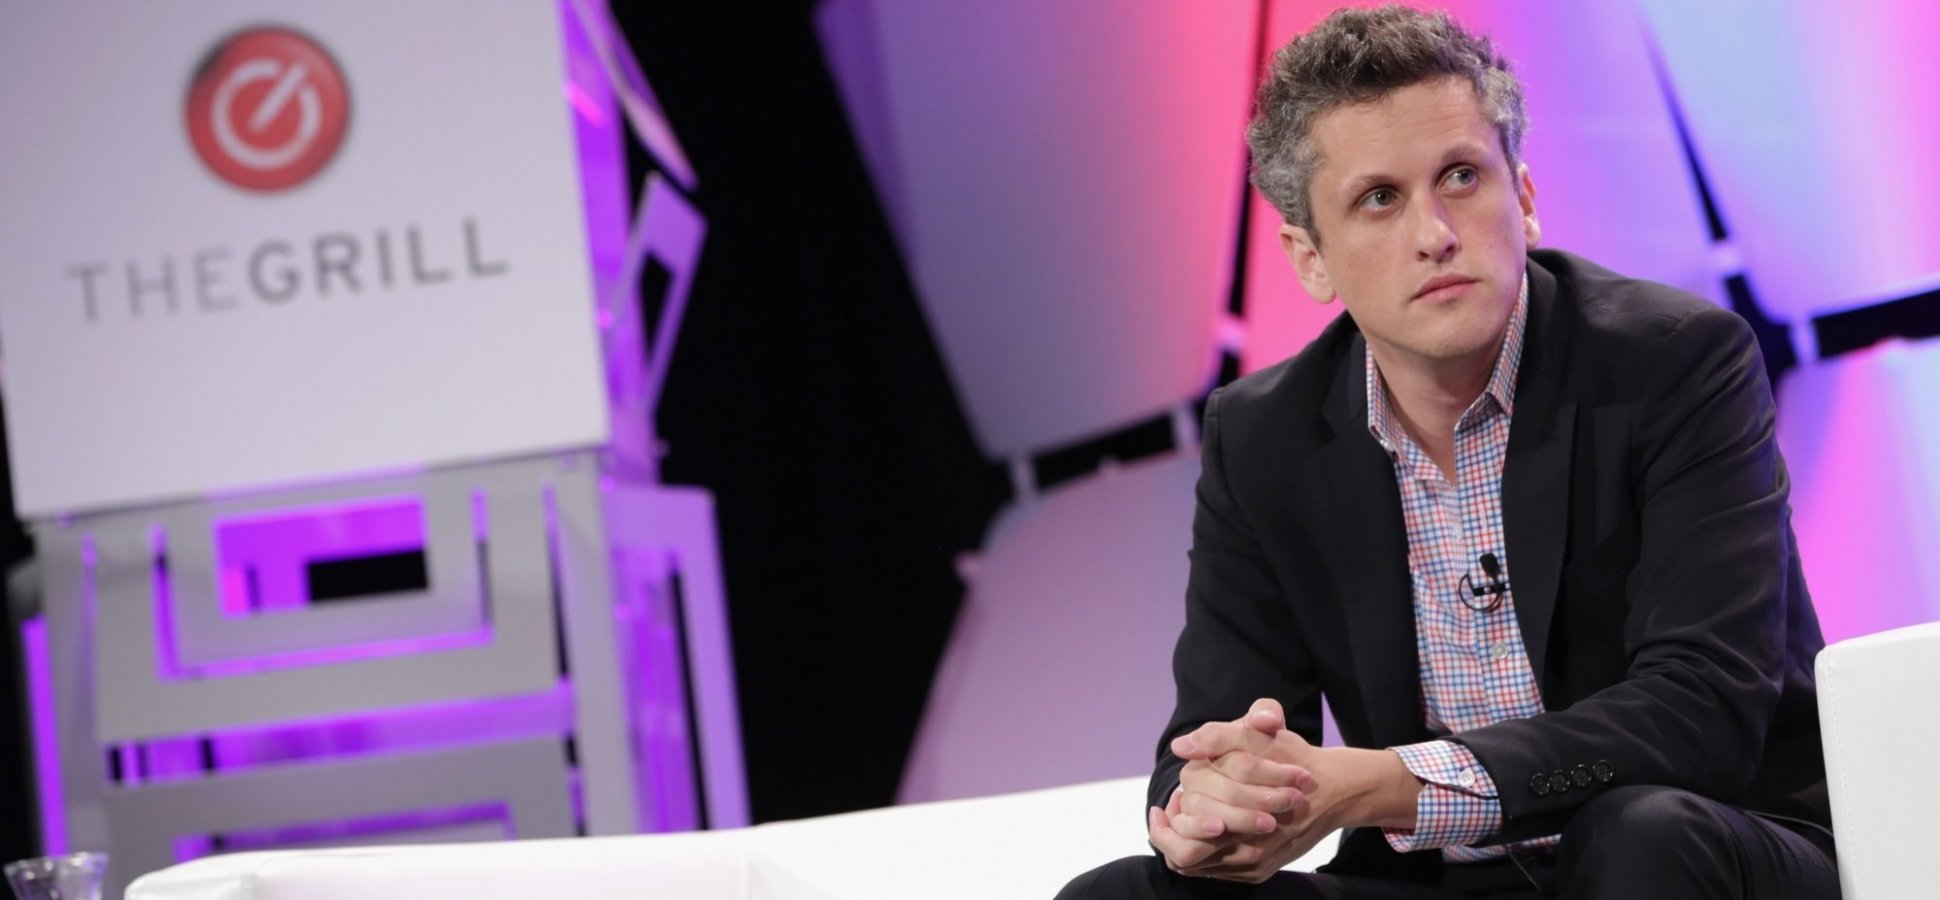 33-Year-Old Millionaire Founder Aaron Levie Says These Are the 2 Books Every Entrepreneur Should Read